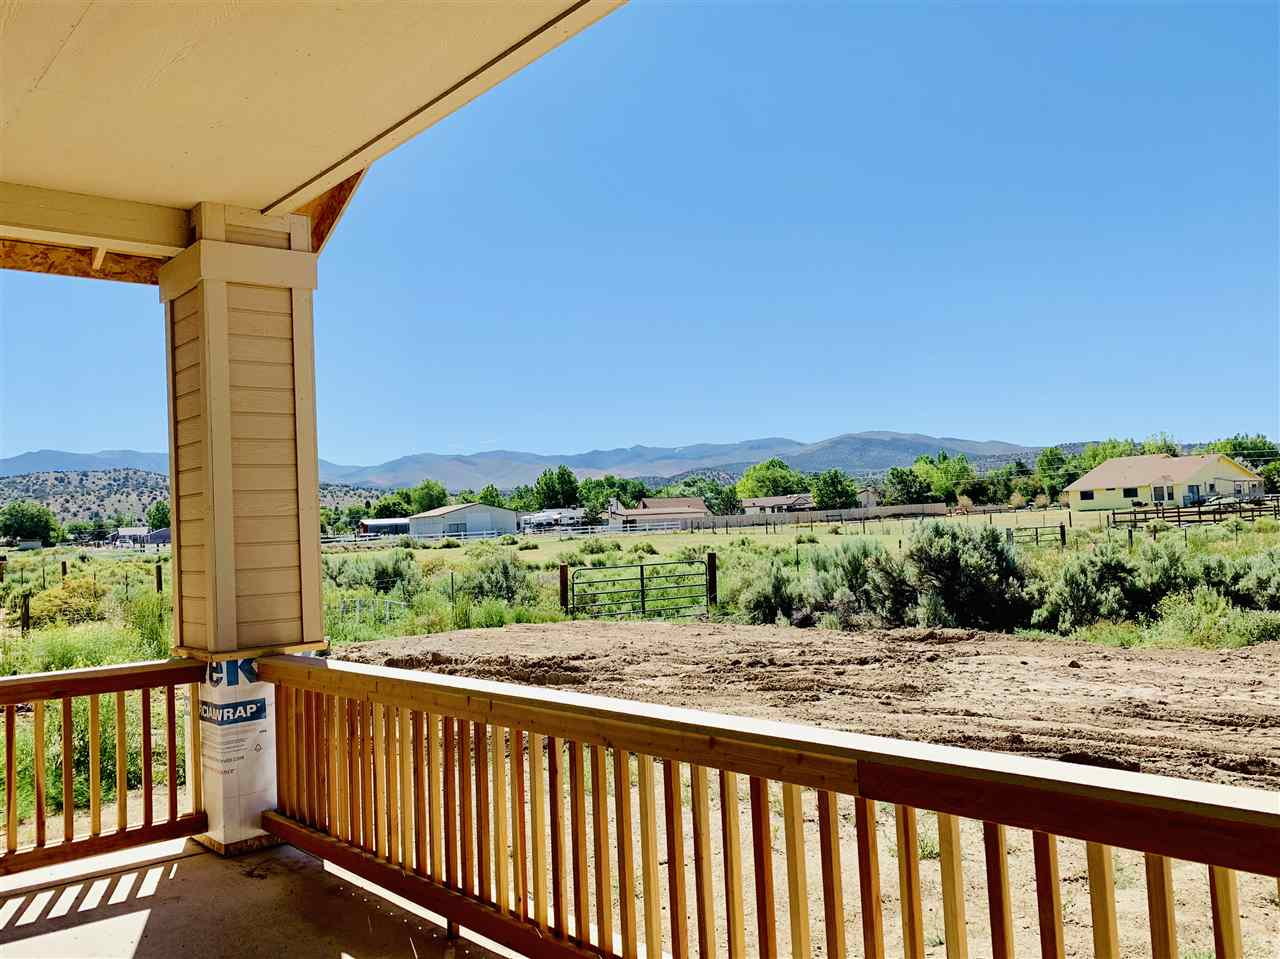 Additional photo for property listing at 815 Horseman Gardnerville, Nevada 89410 United States